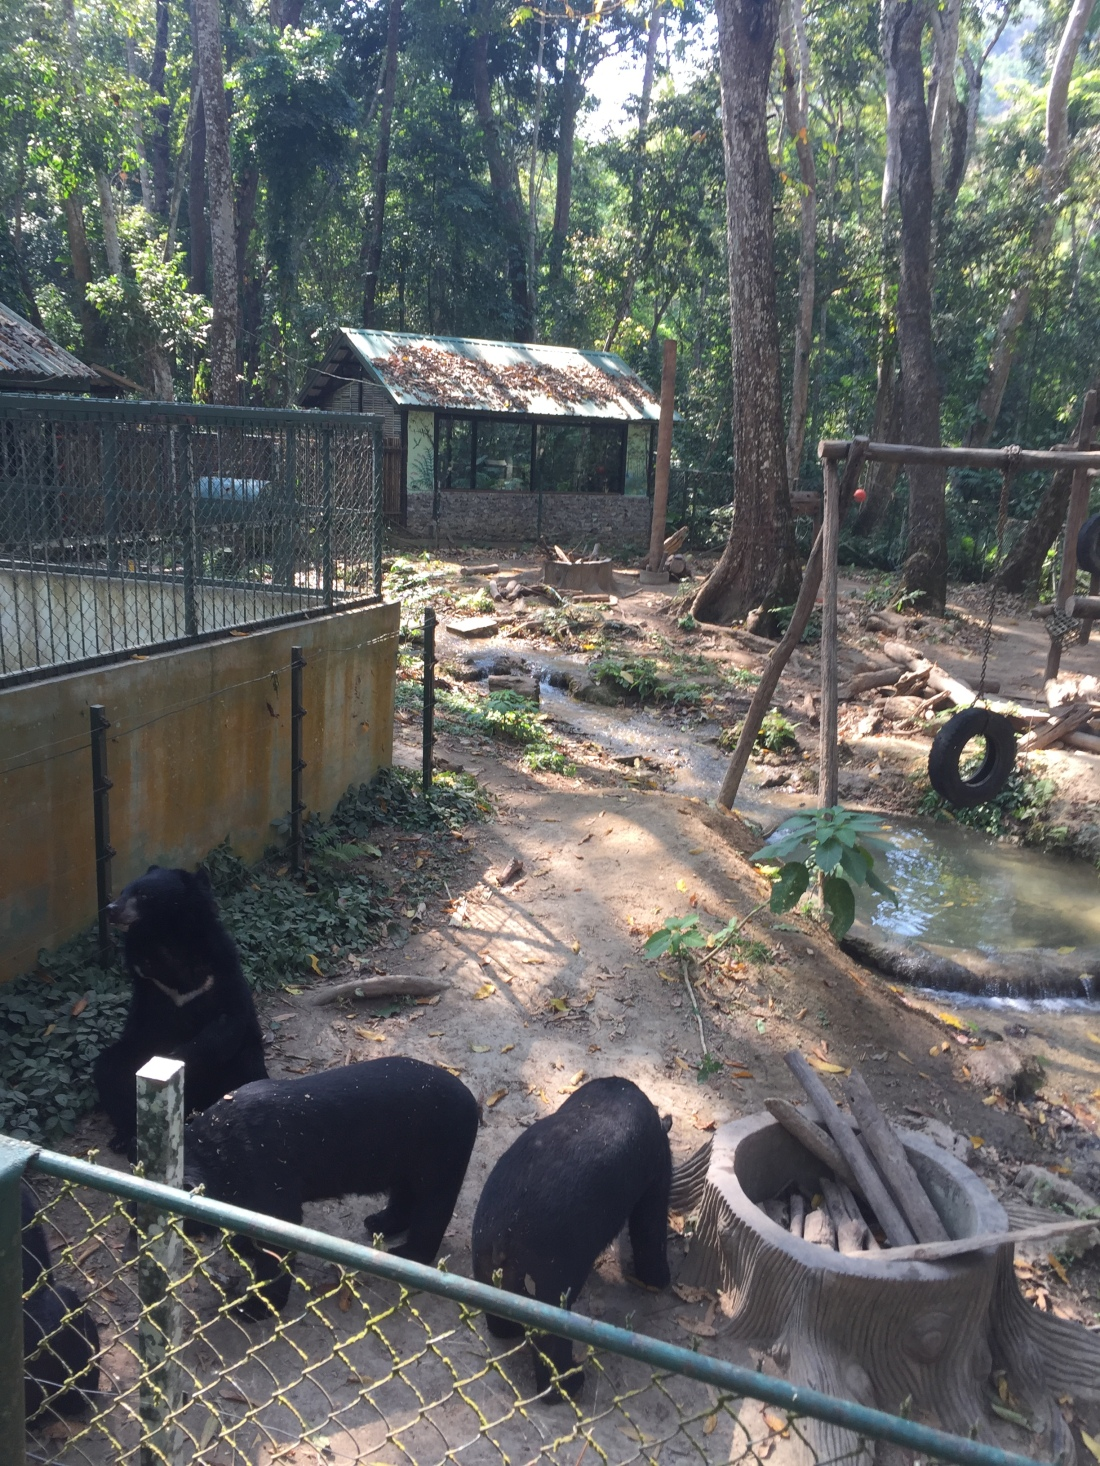 Bear Sanctuary Luang Prabang Laos